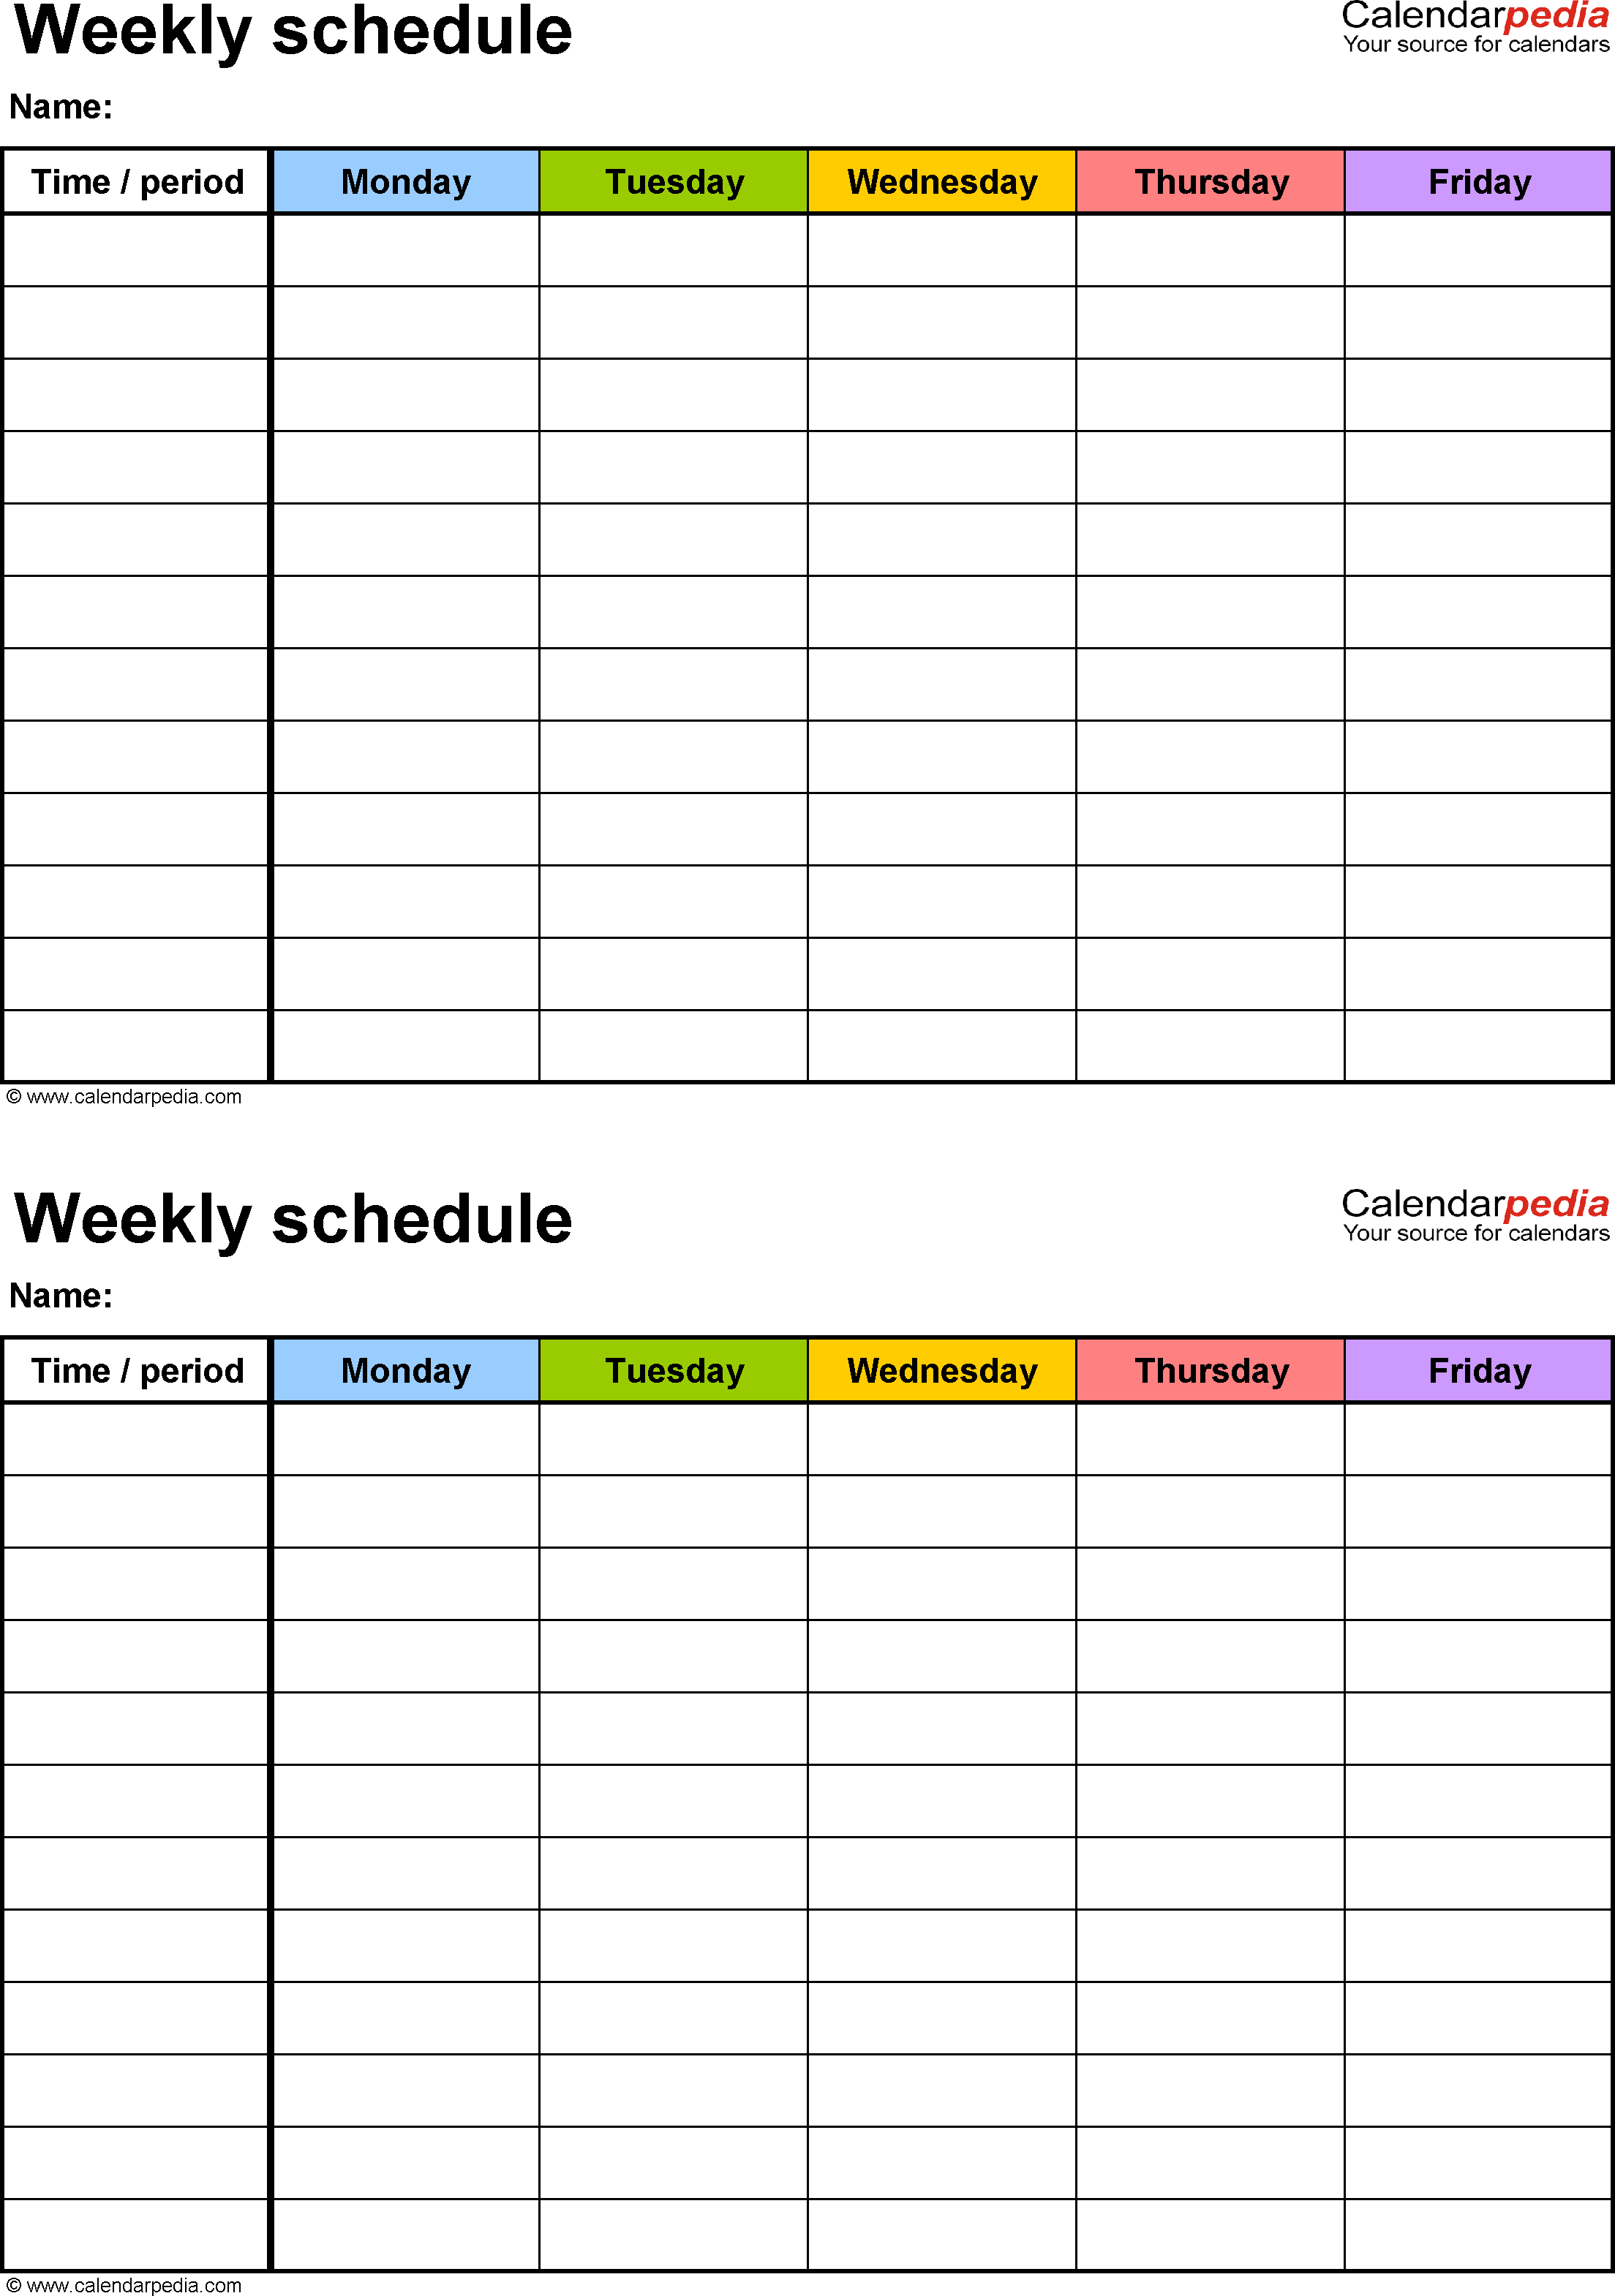 Weekly schedule template for excel version 3 2 schedules on one weekly schedule template for excel version 3 2 schedules on one page portrait pronofoot35fo Choice Image